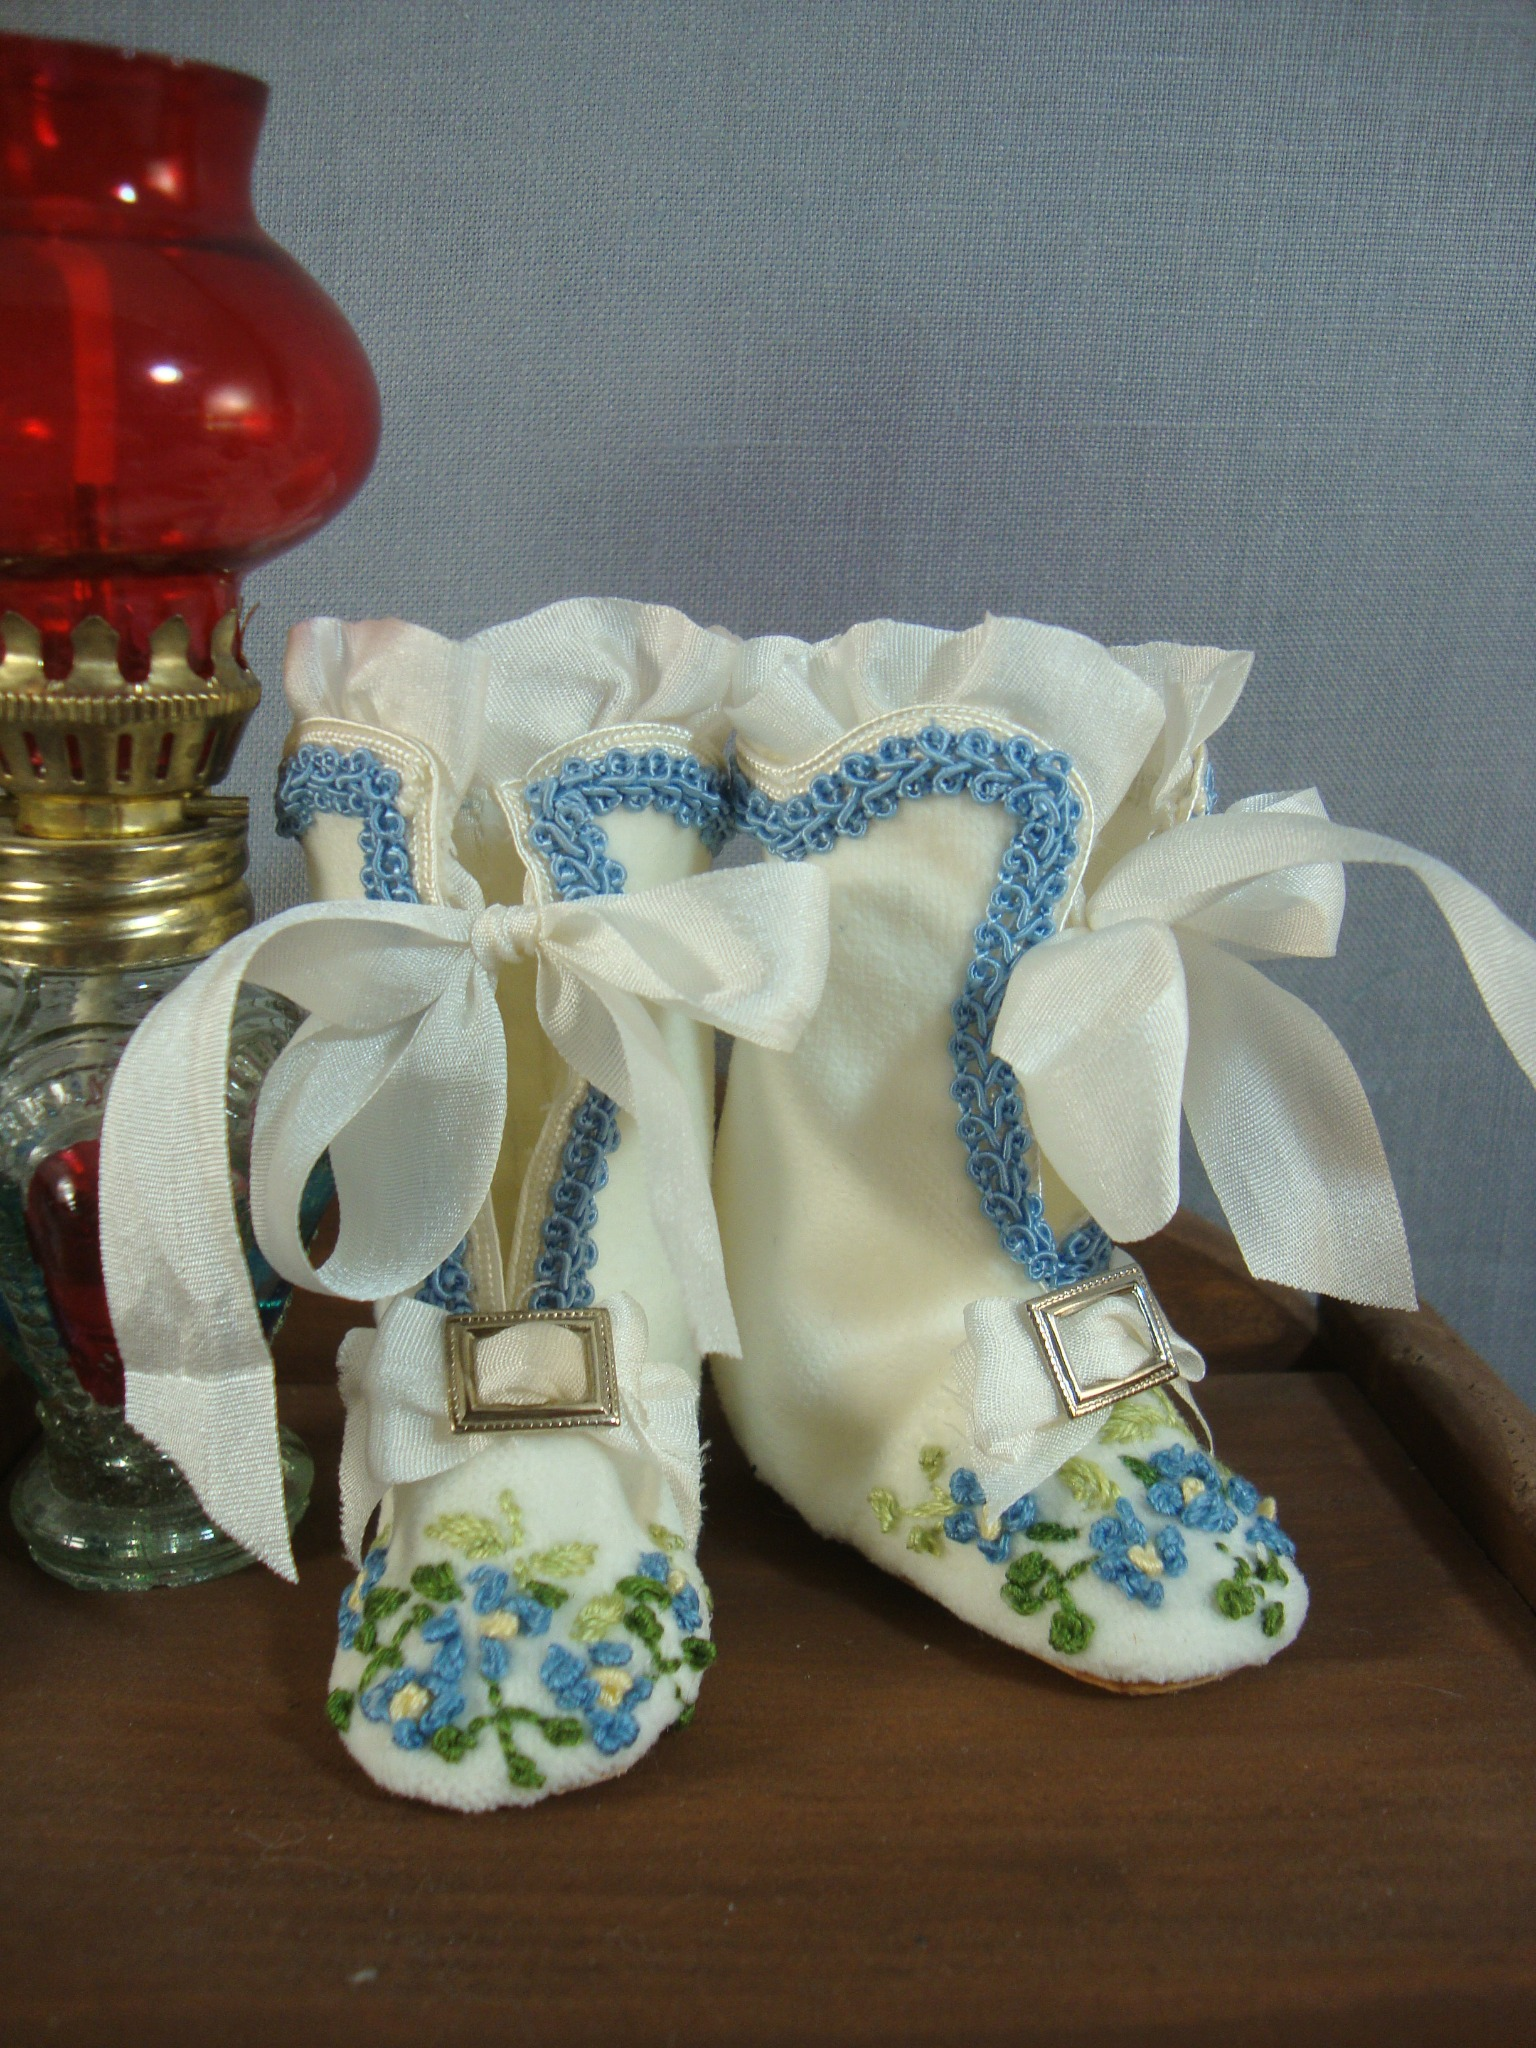 "Embroidered Boots and Slippers for 12.5"" Body"